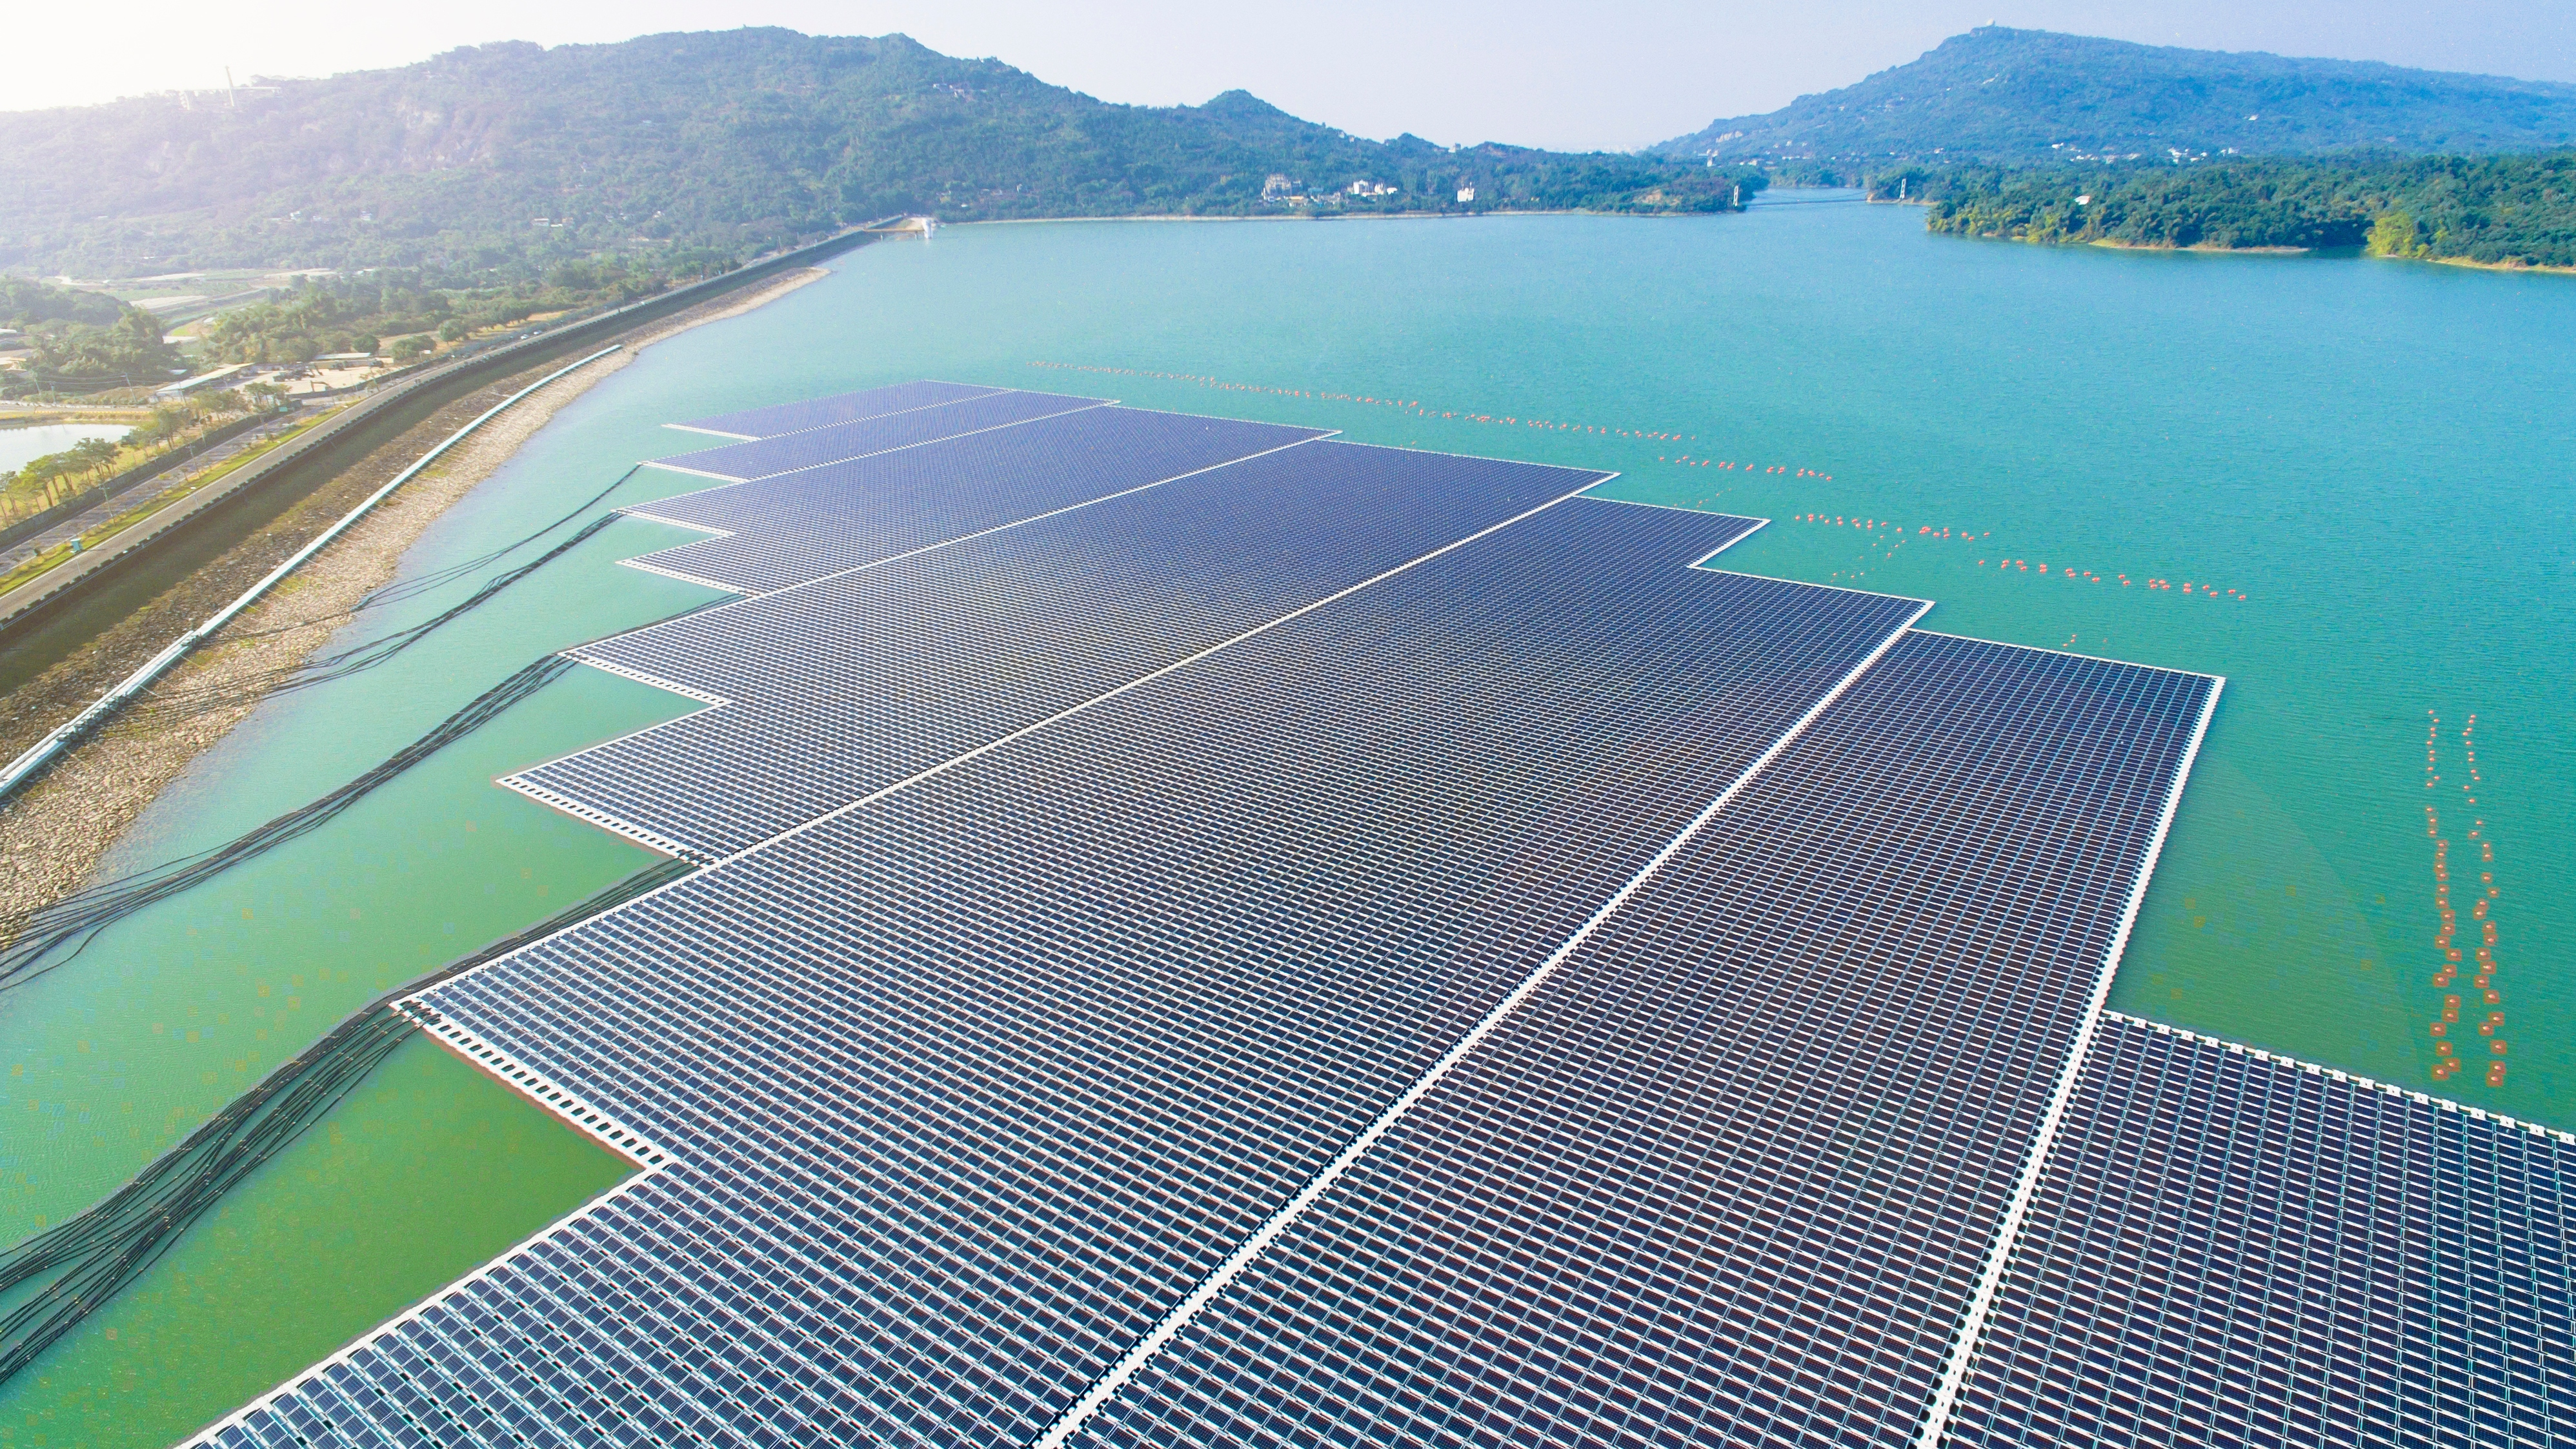 Floating solar panels or solar cell platform on the lake